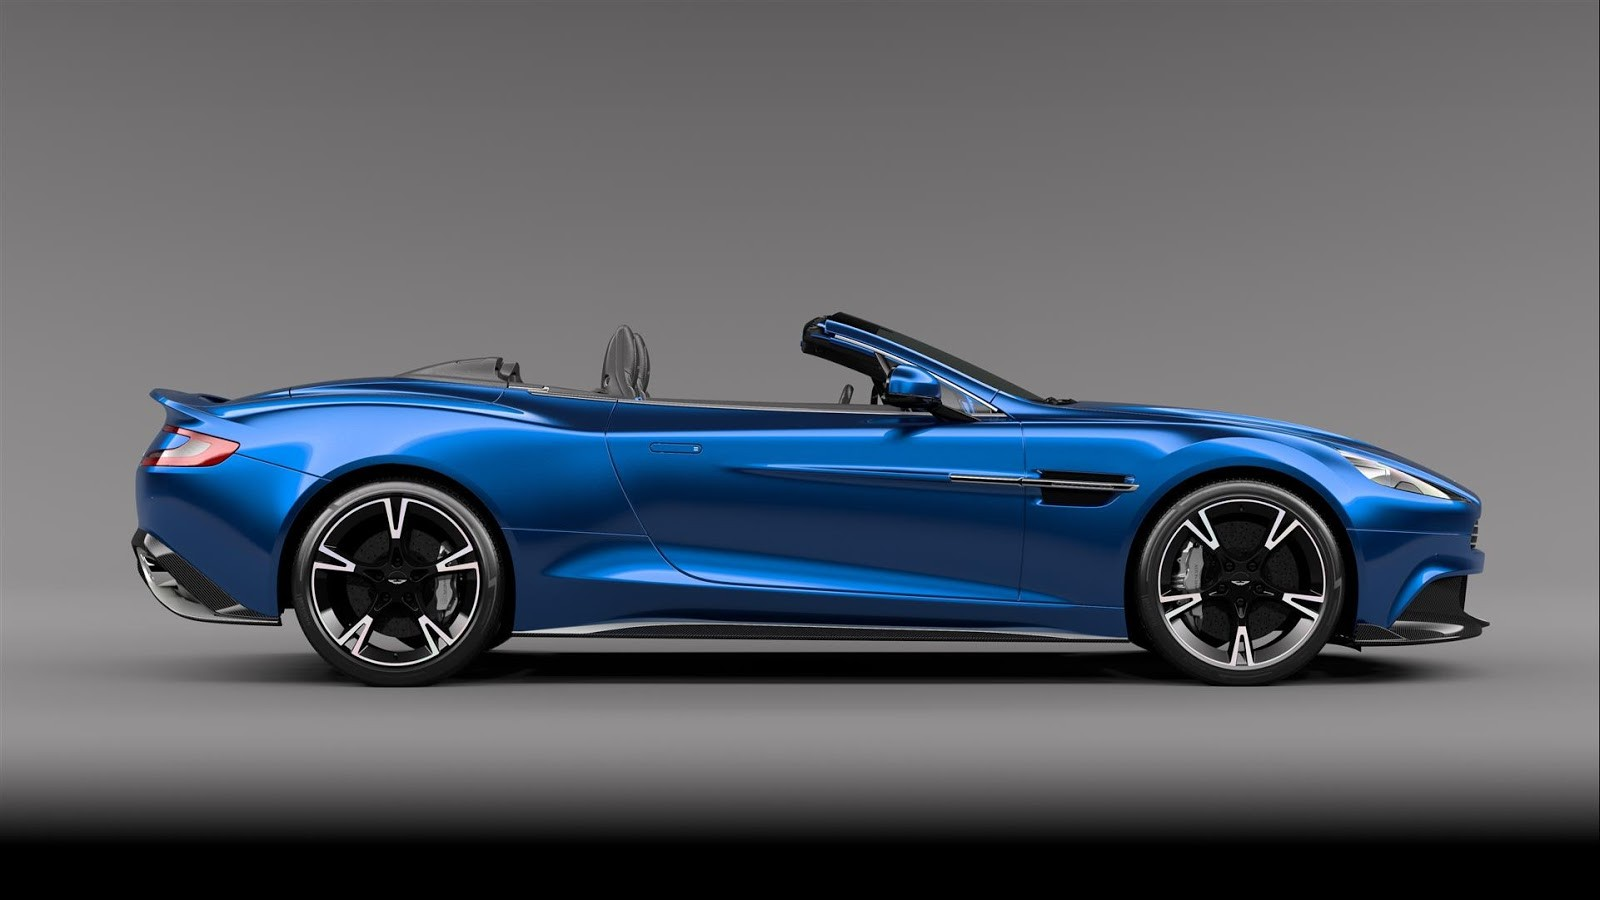 2017 aston martin vanquish s volante gets updated 600 hp v12. Black Bedroom Furniture Sets. Home Design Ideas